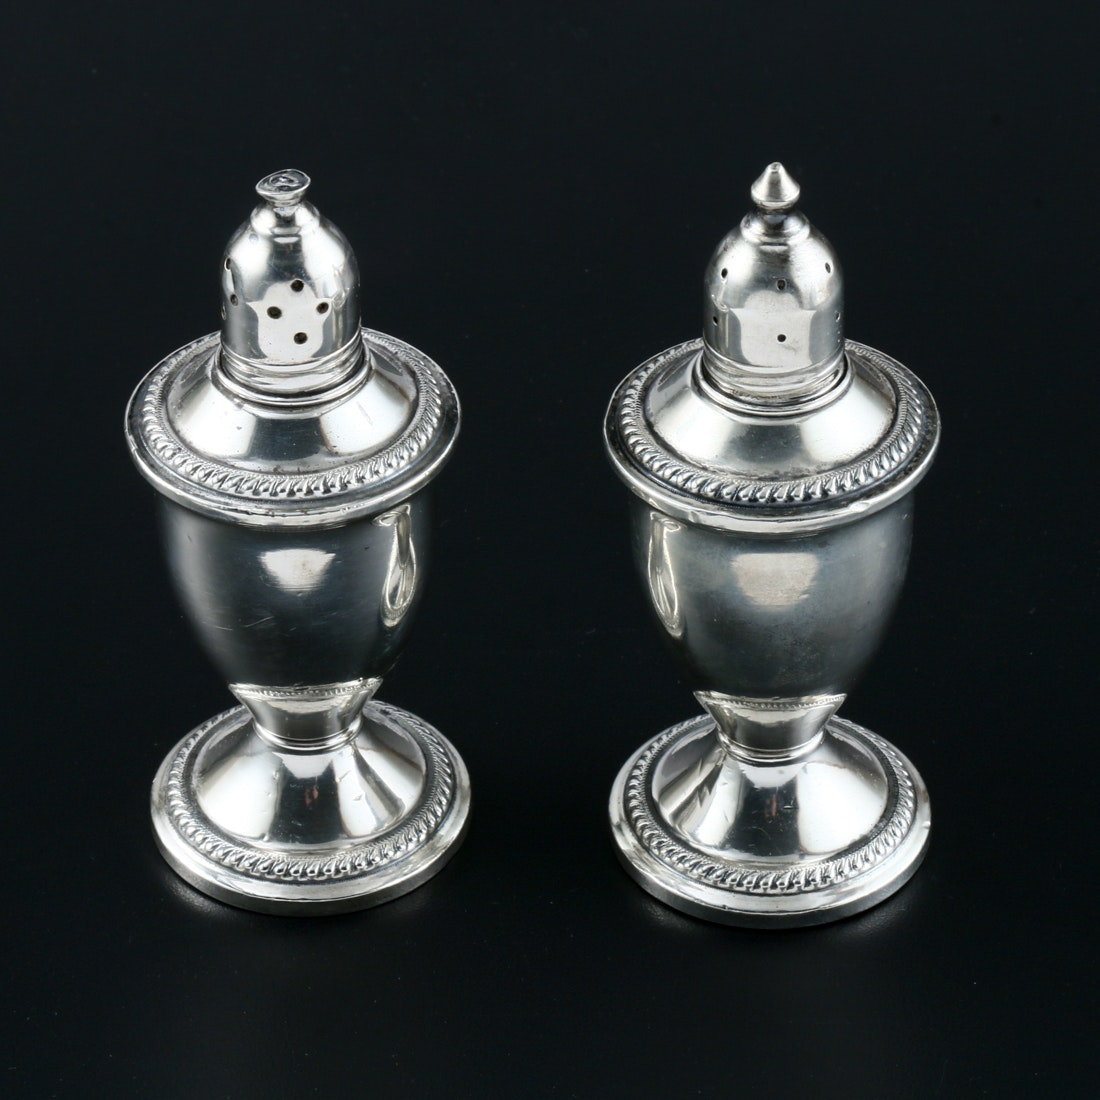 Weighted Sterling Silver Salt and Pepper Shakers